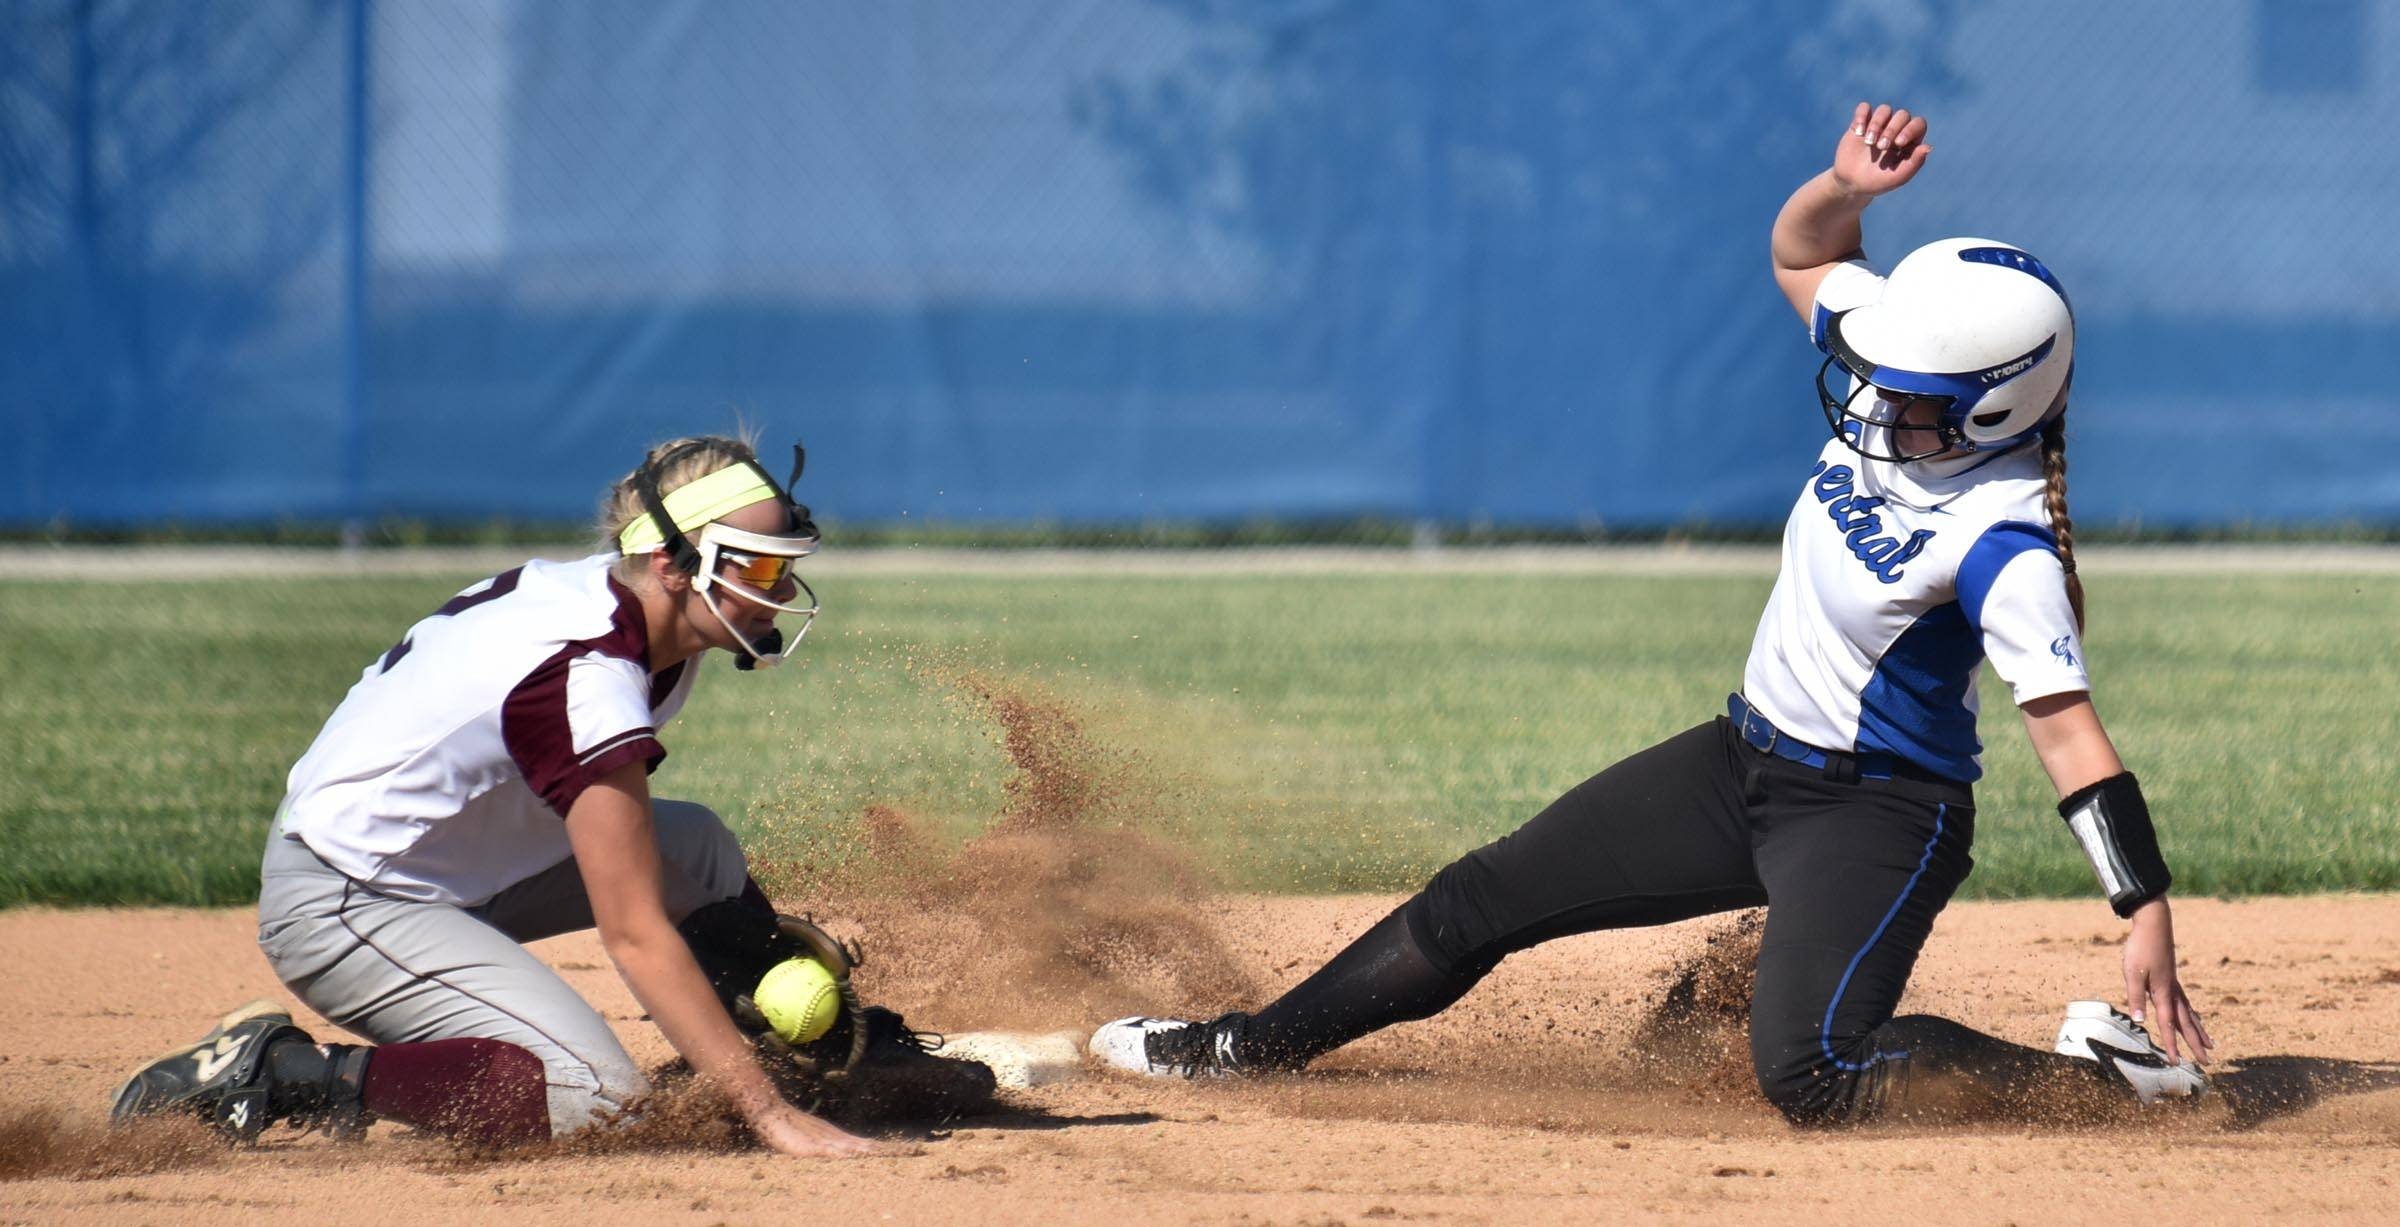 Burlington Central's Kristina Ahlers slides safely into second base as Marengo's Leah Secor tries to secure the ball early in the game Wednesday in the Genoa-Kingston sectional.